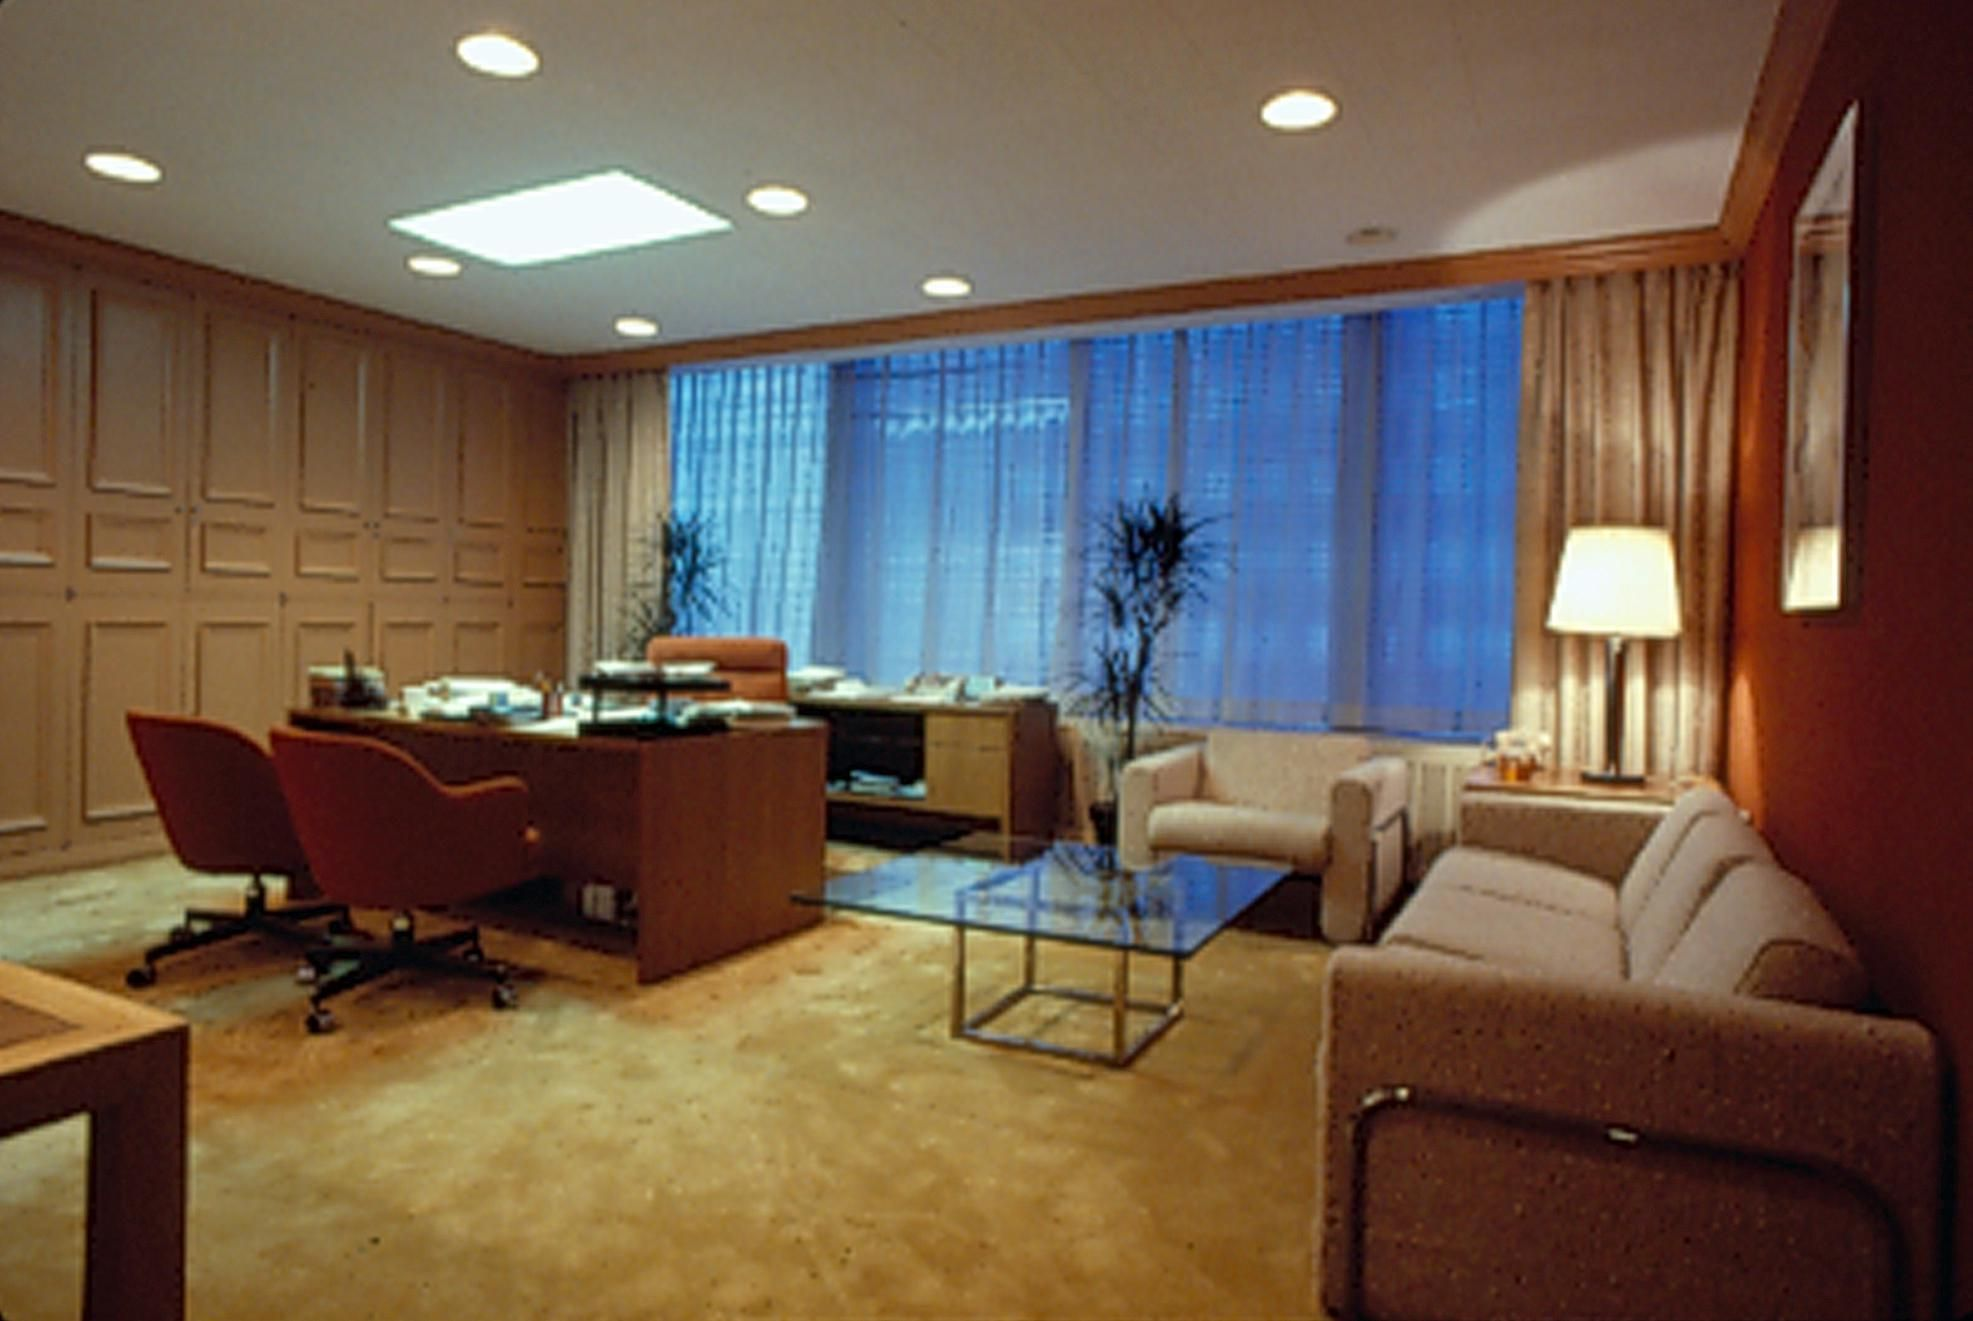 Vp executive office this office uses furniture carpeting for Modern executive office design ideas